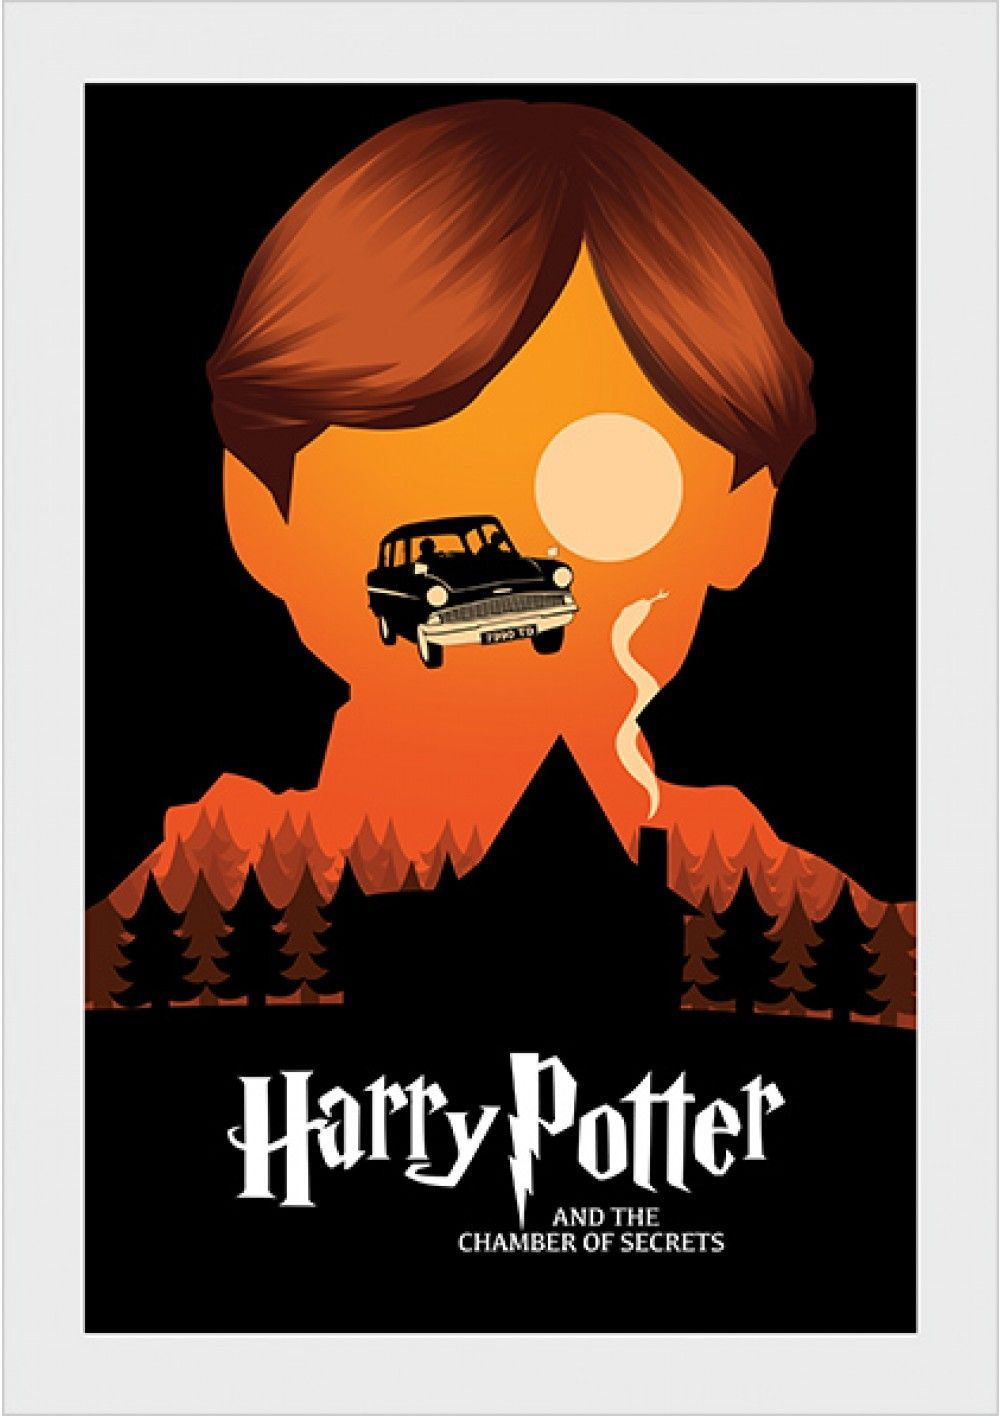 Harry Potter Poster 75 Printable Posters All Parts Free Download Harry Potter Poster Harry Potter Wall Harry Potter Wall Stickers